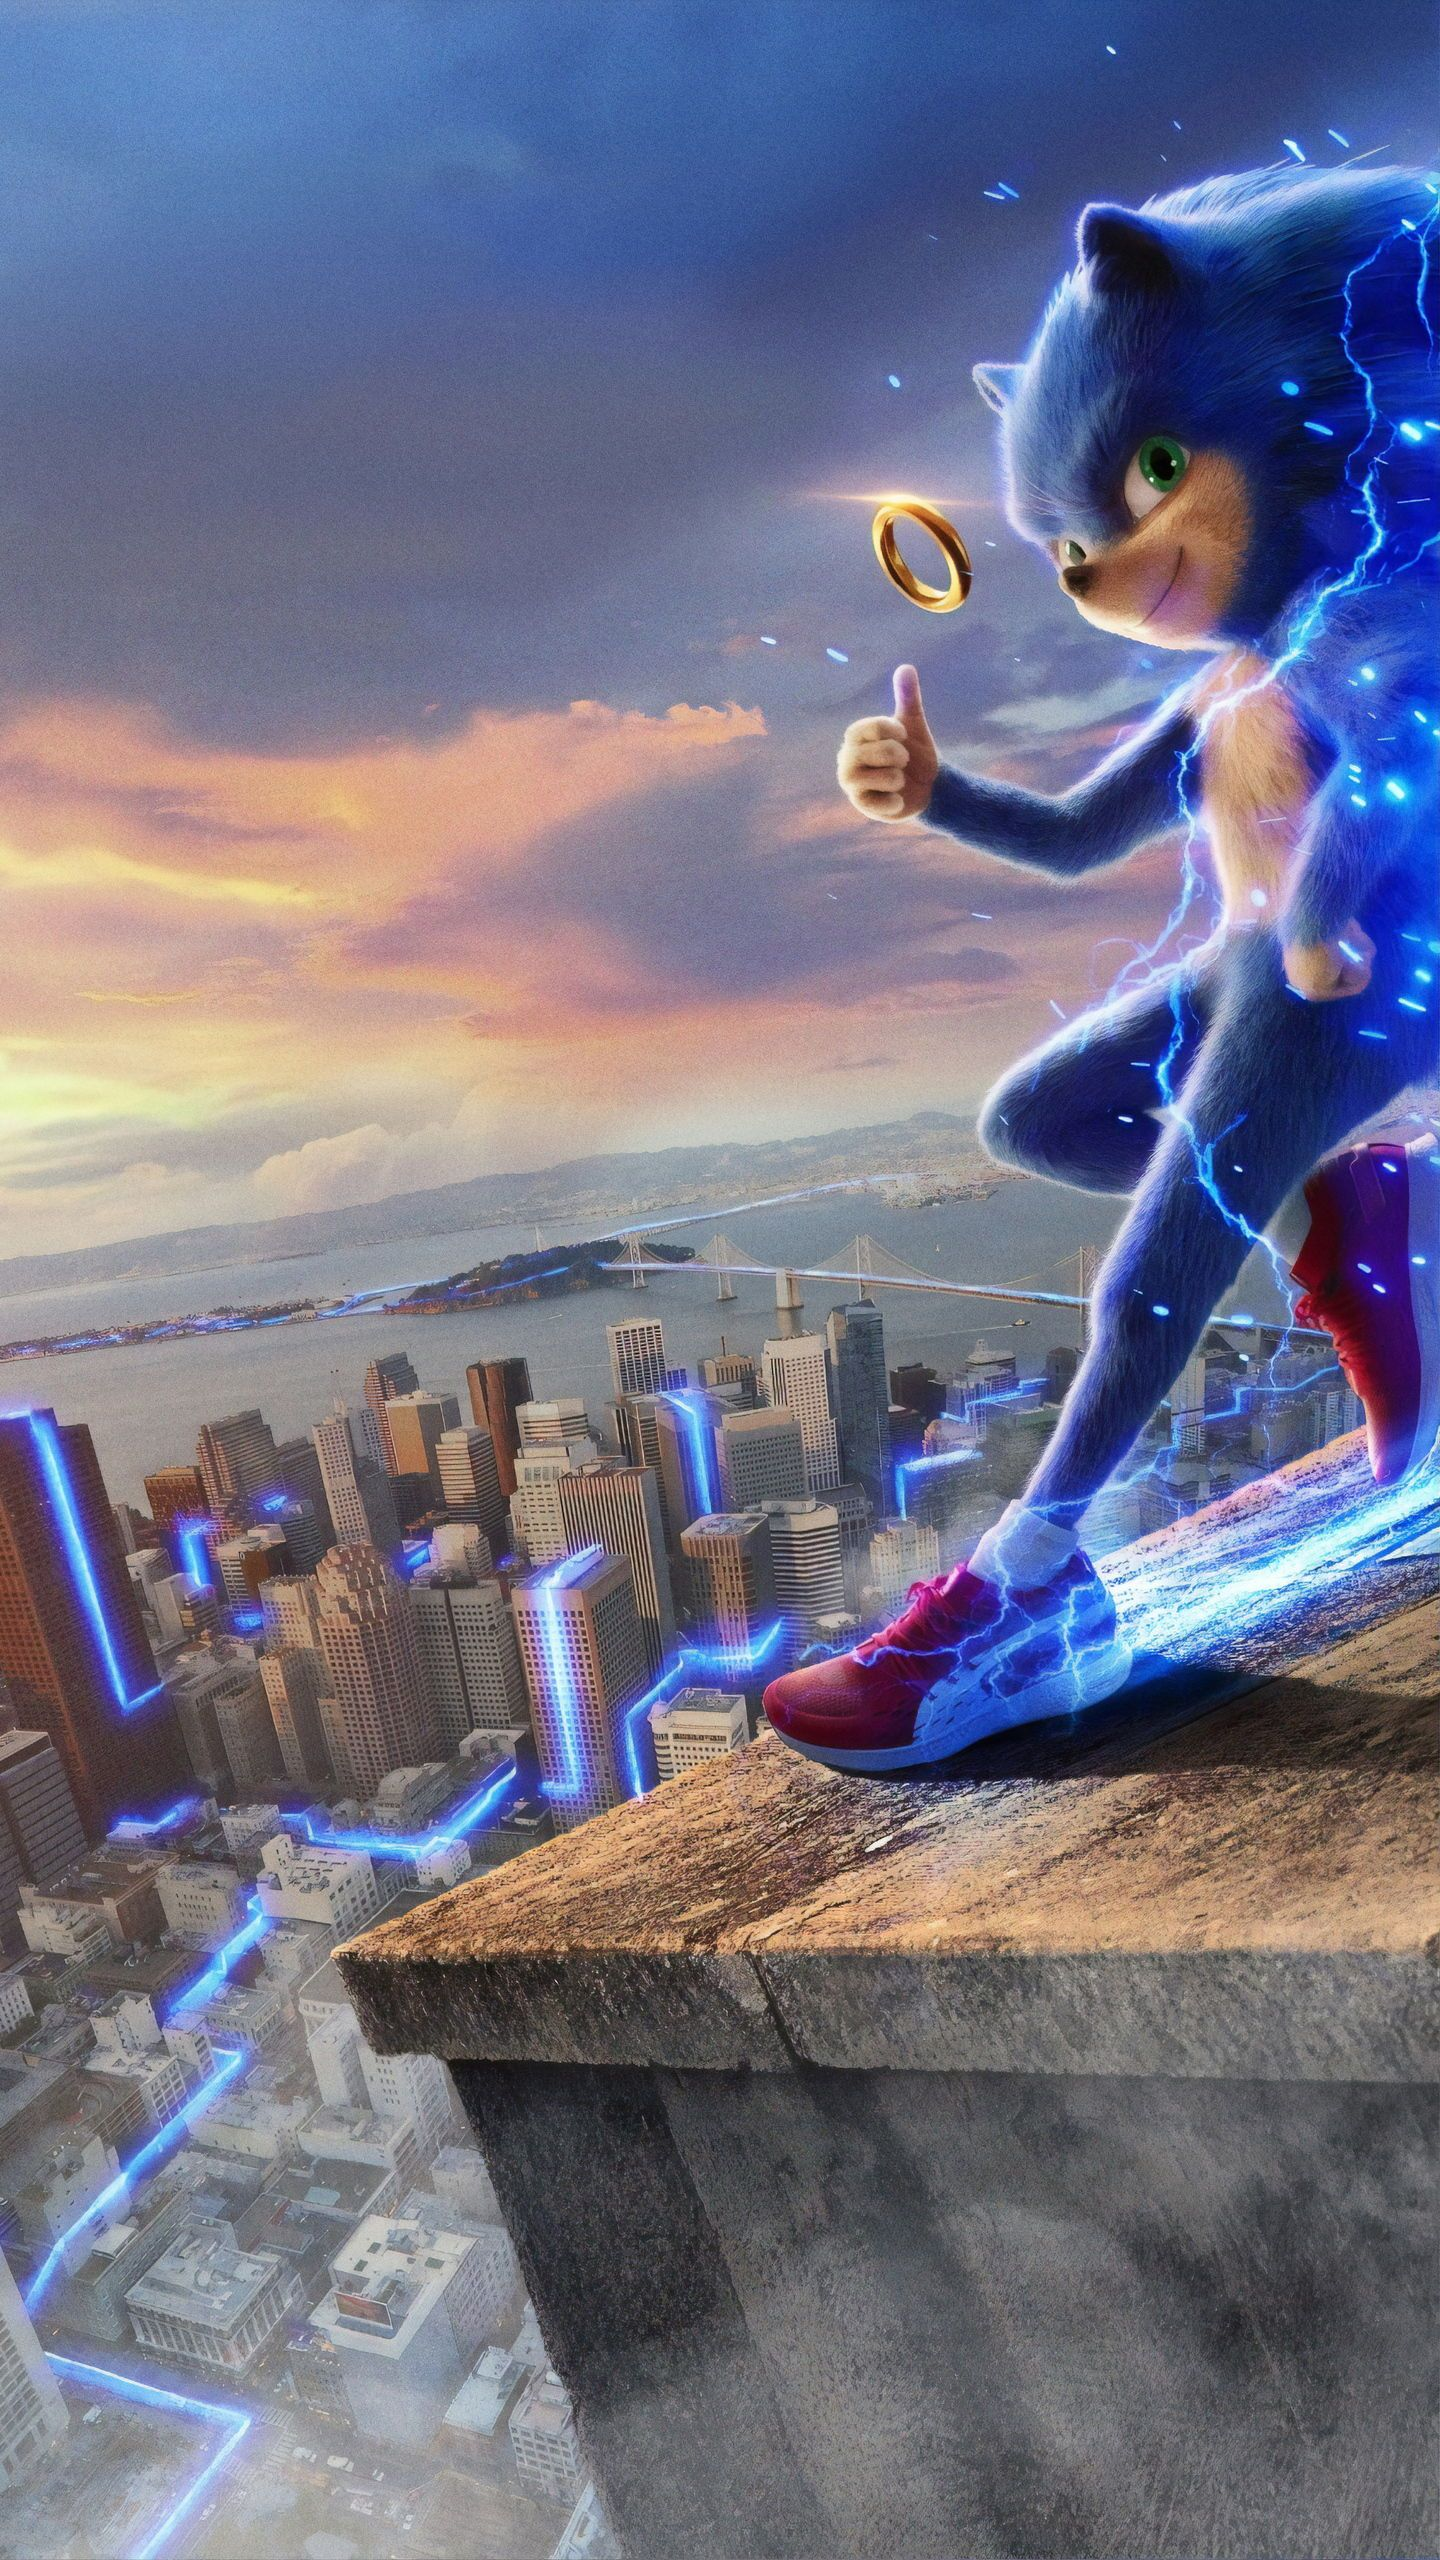 Sonic The Hedgehog Wallpaper Sonic Wallpaper Poster Save Iphone Hedgehog Movie Movie Wallpapers Sonic The Movie